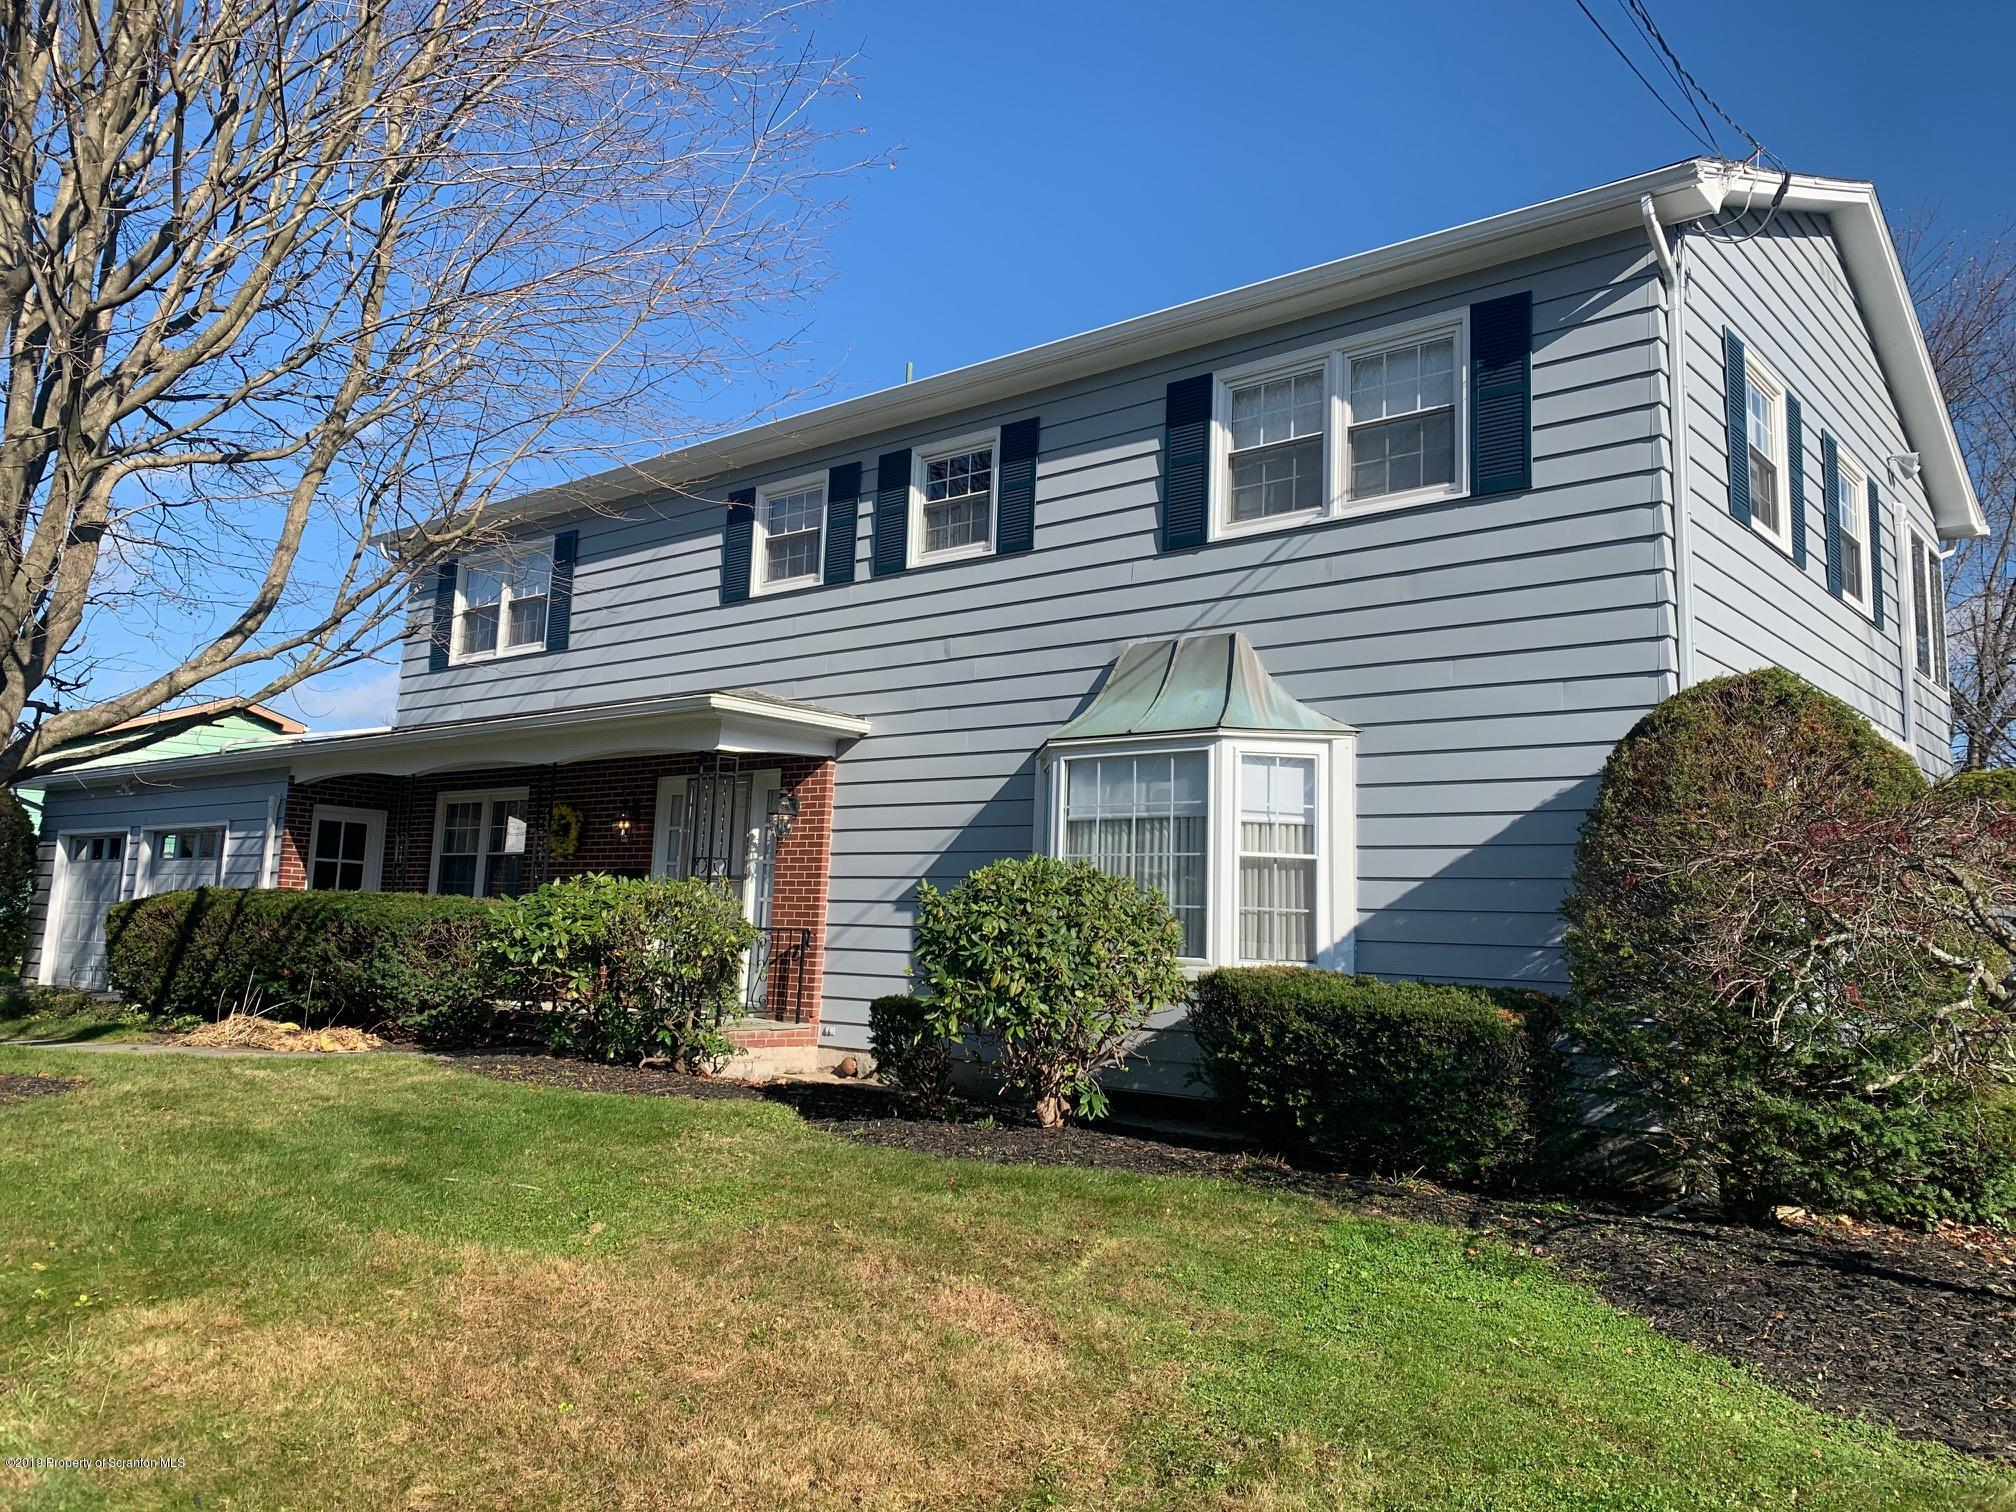 512 Tulip Cir, Clarks Summit, Pennsylvania 18411, 4 Bedrooms Bedrooms, 10 Rooms Rooms,3 BathroomsBathrooms,Single Family,For Sale,Tulip,19-5296